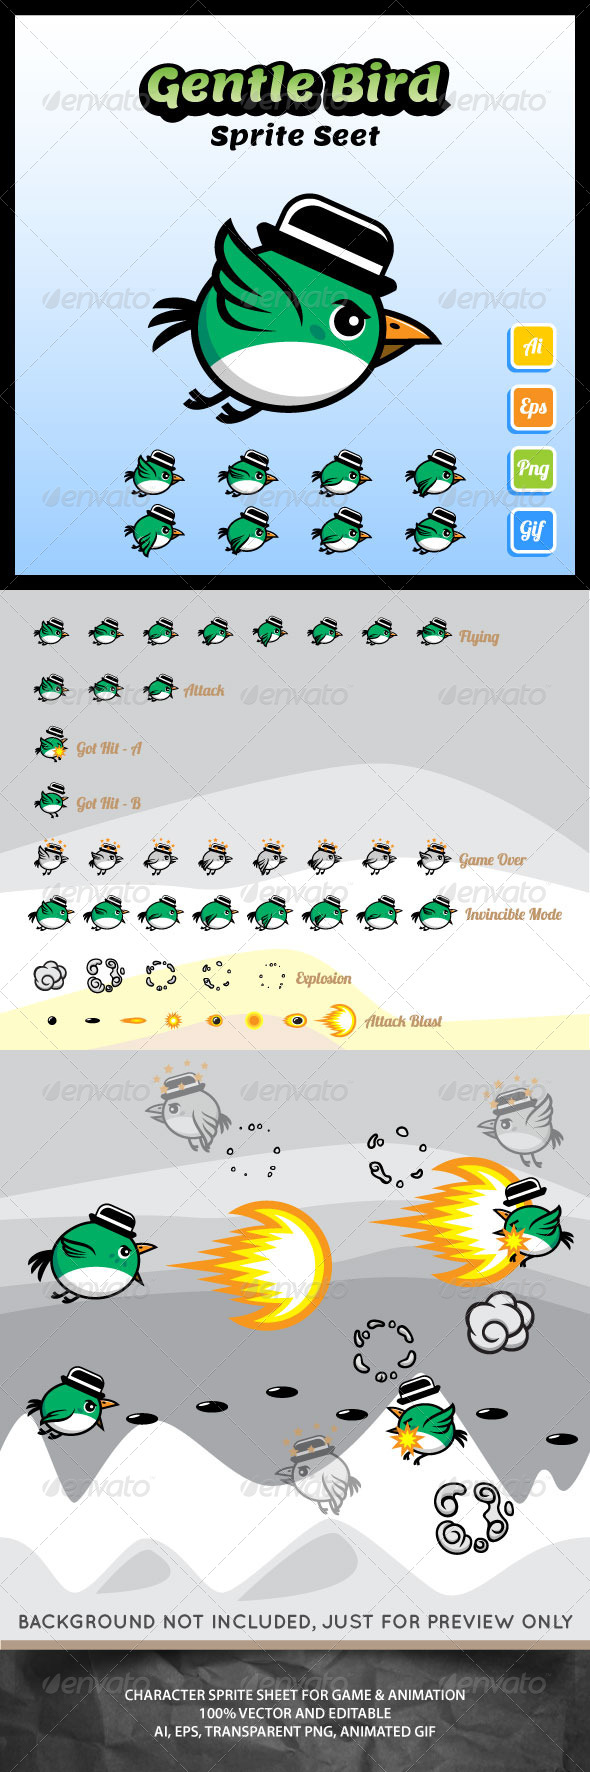 Gentle Bird Sprite Sheet - Sprites Game Assets